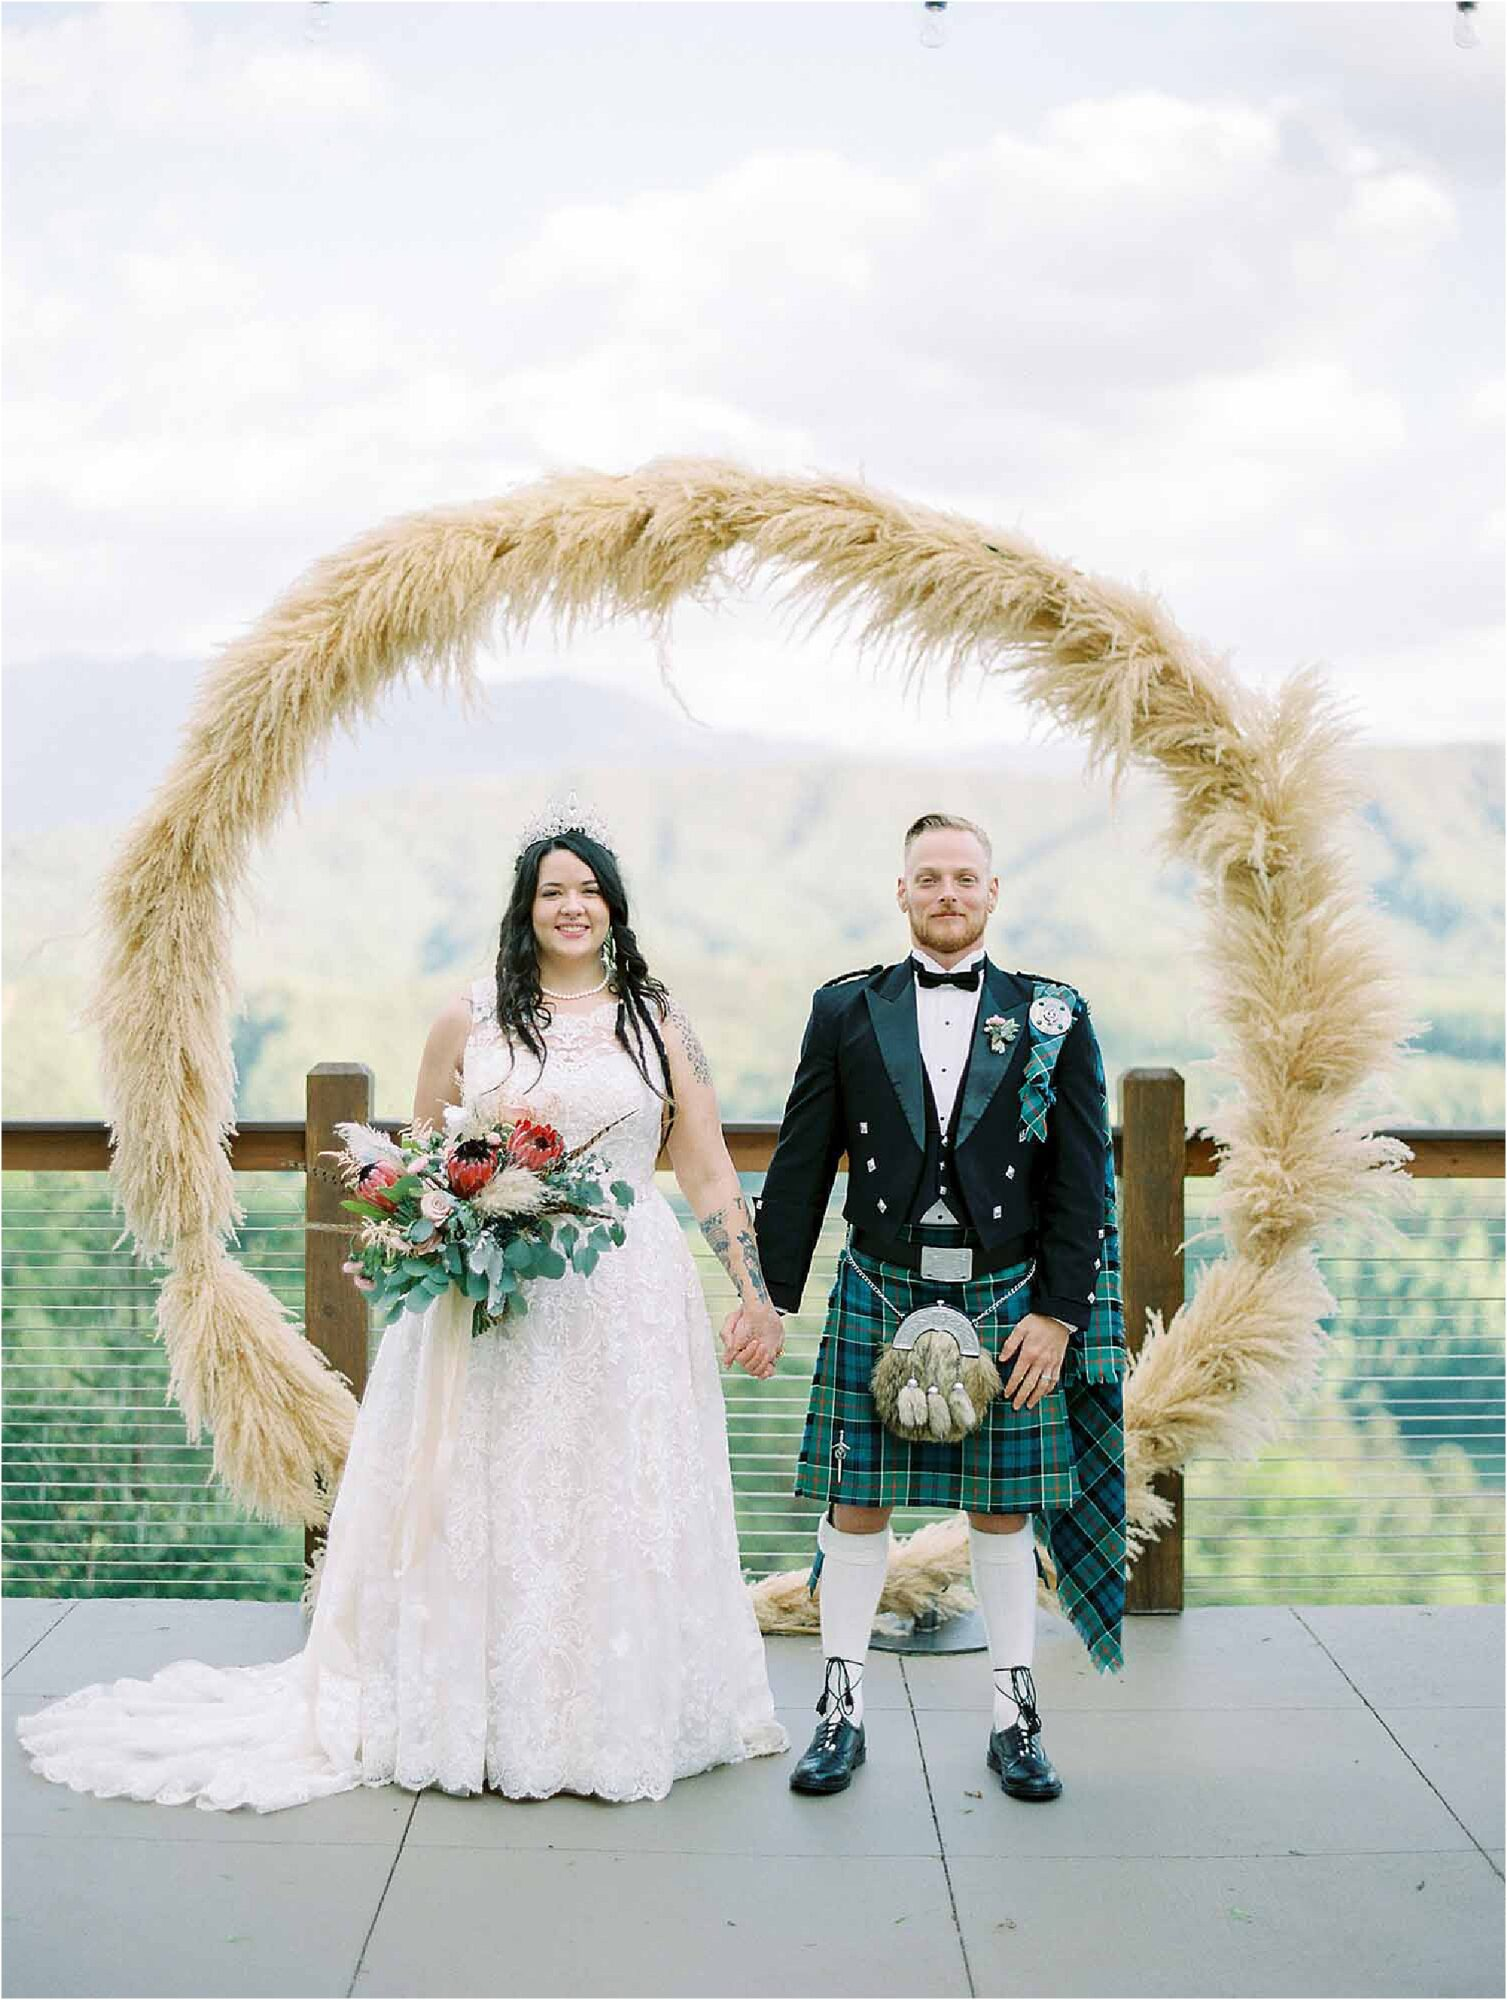 bride and groom stand in front of circle wedding arbor